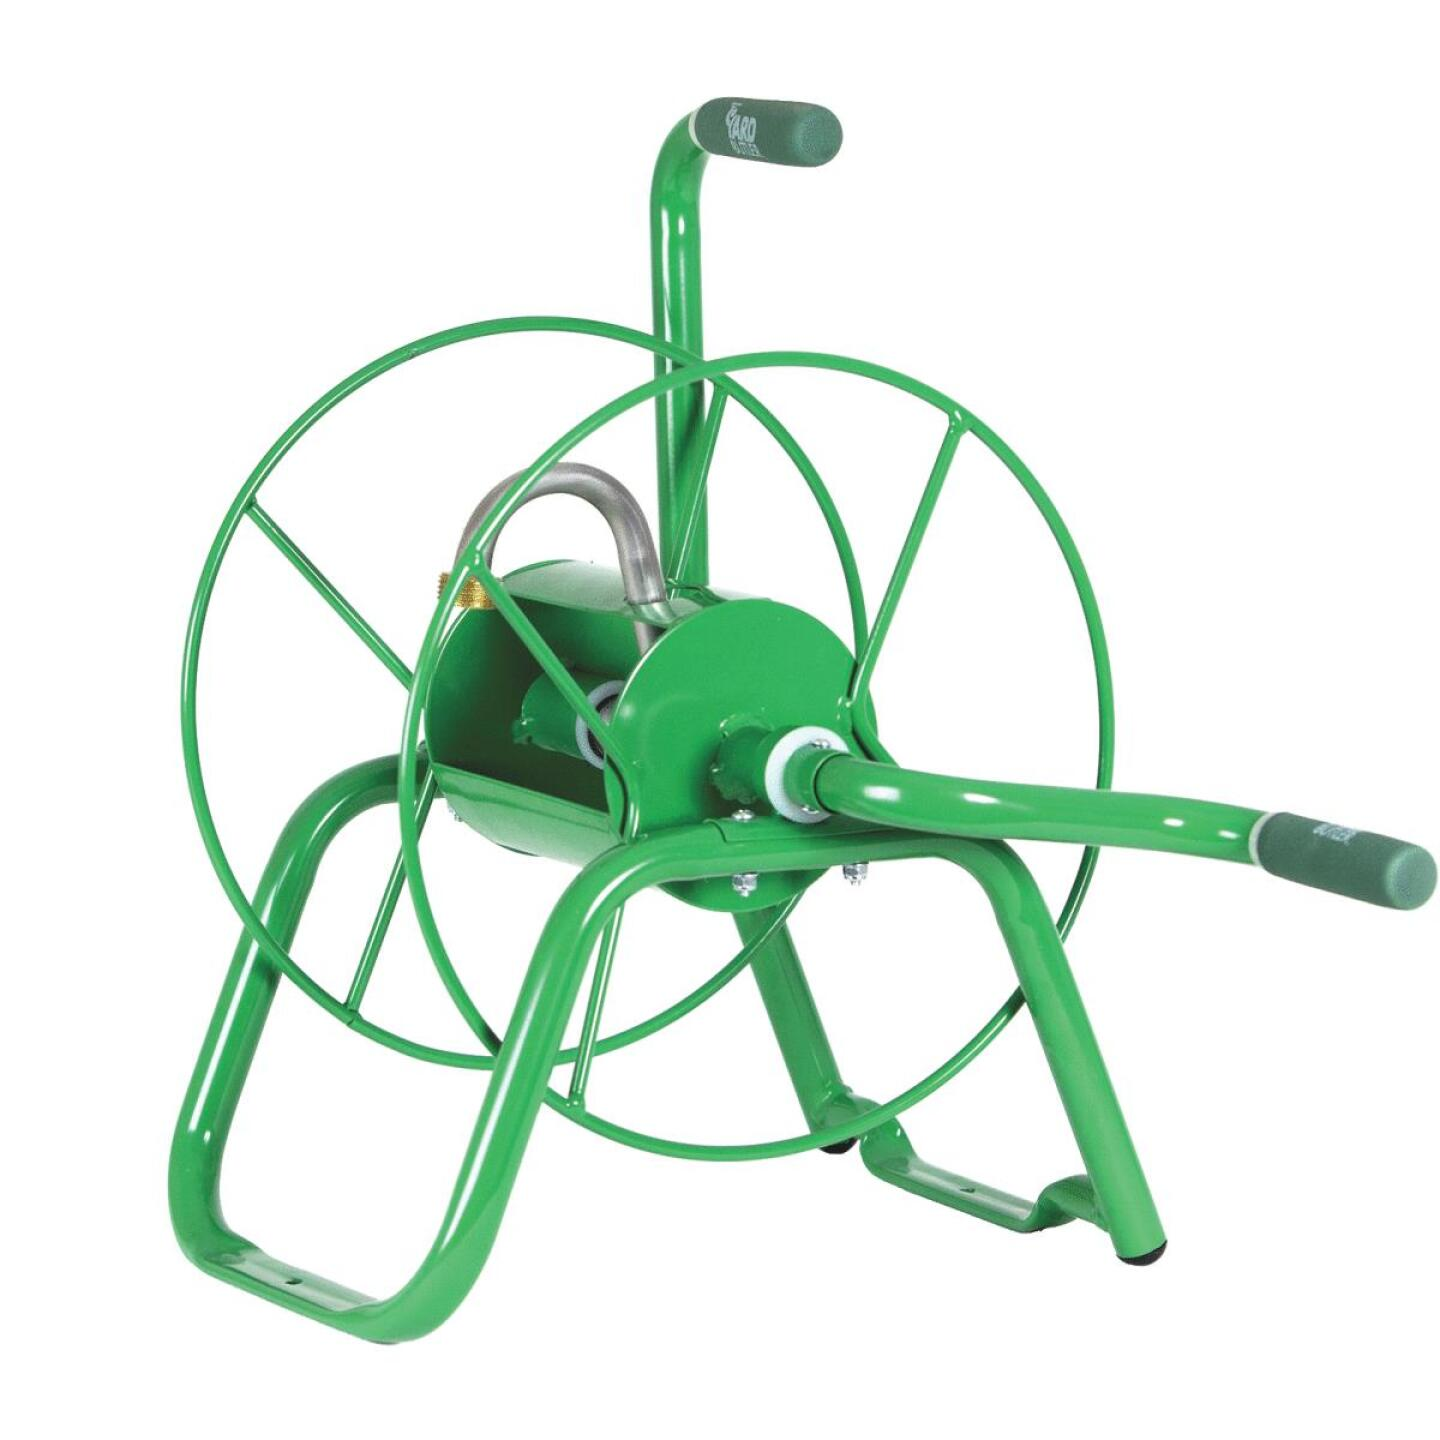 Yard Butler Handy Reel 75 Ft. x 5/8 In. Green Steel Hose Reel Image 1